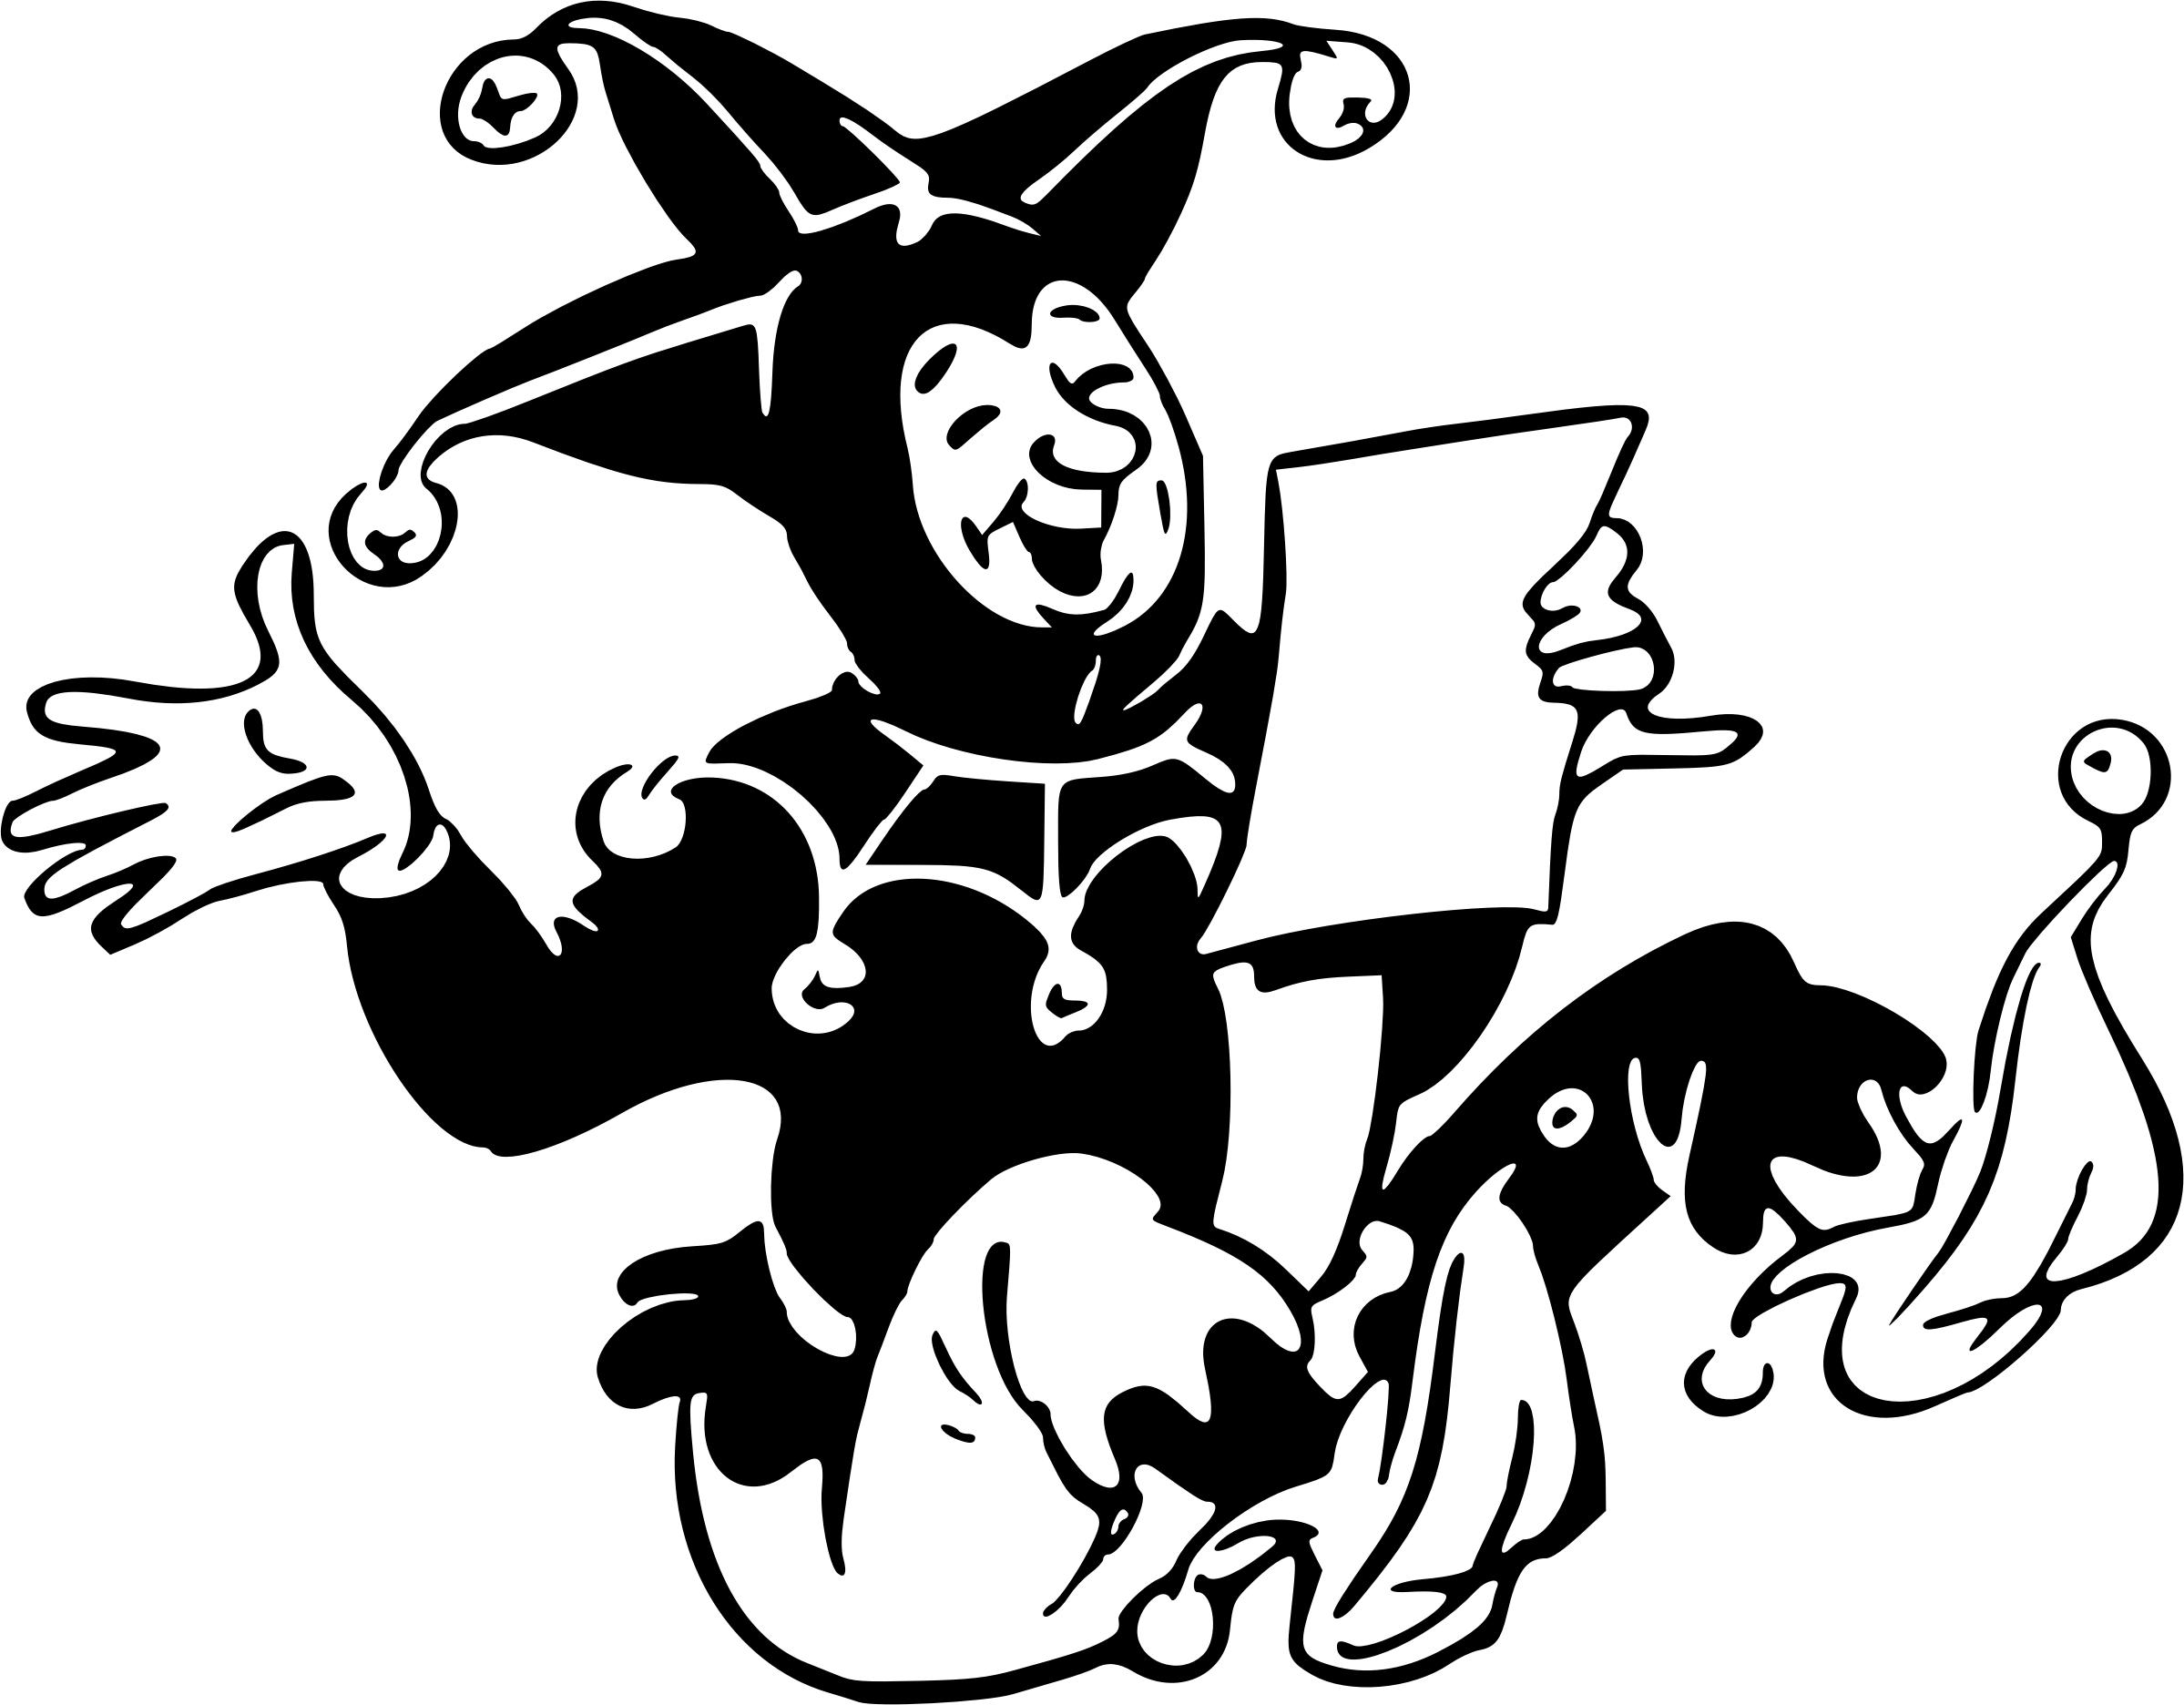 c157a37acbc Jester Png   Free Jester.png Transparent Images  2077 - PNGio